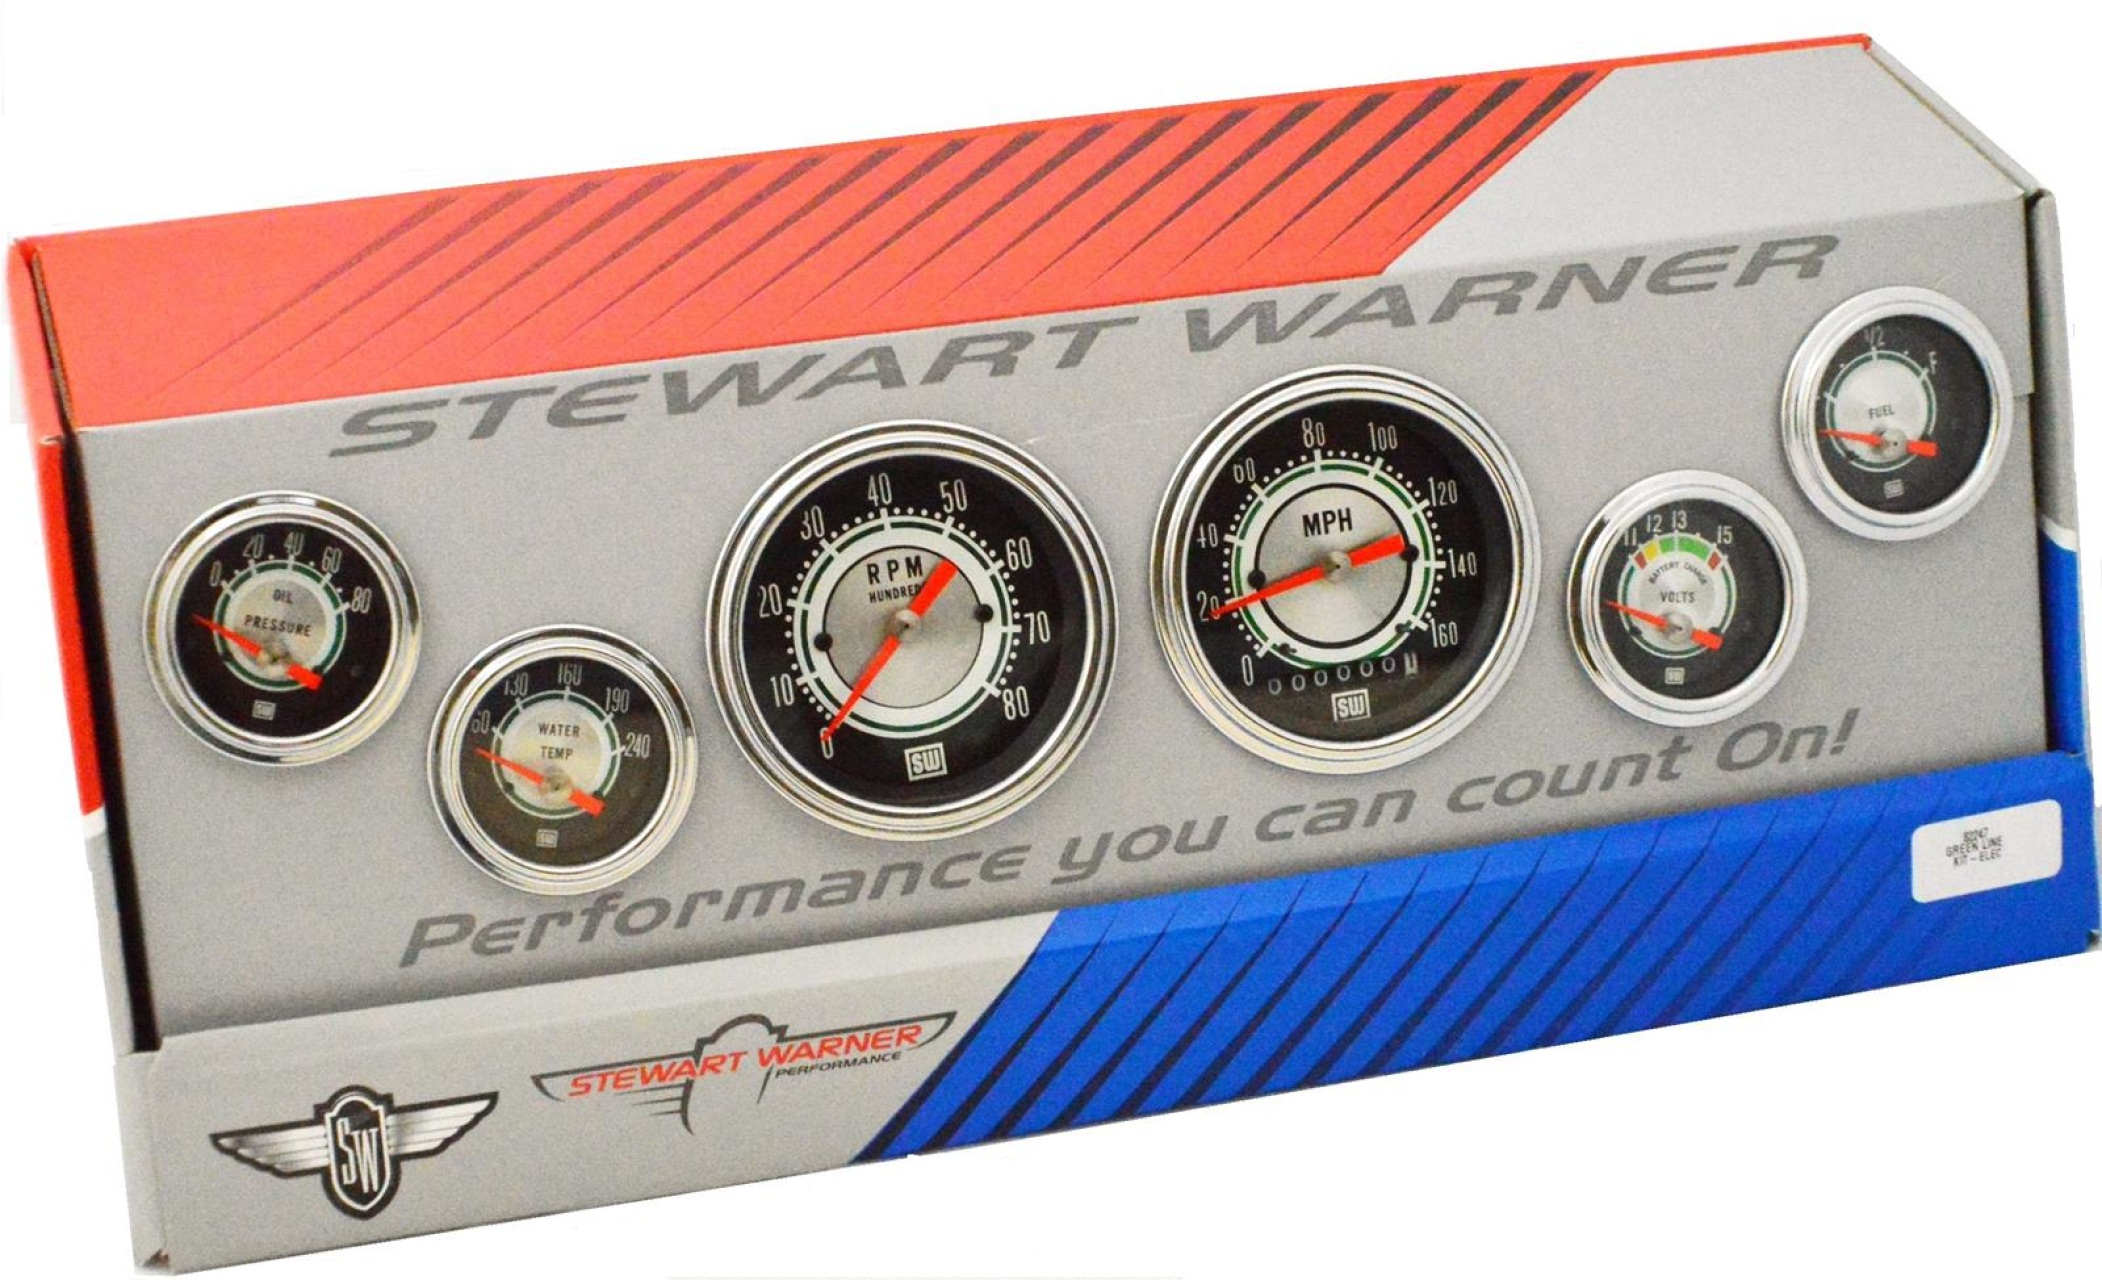 s689572963557007764_p2990_i1_w1280 stewart warner green line series gauges egaugesplus vintage stewart warner tachometer wiring diagram at panicattacktreatment.co